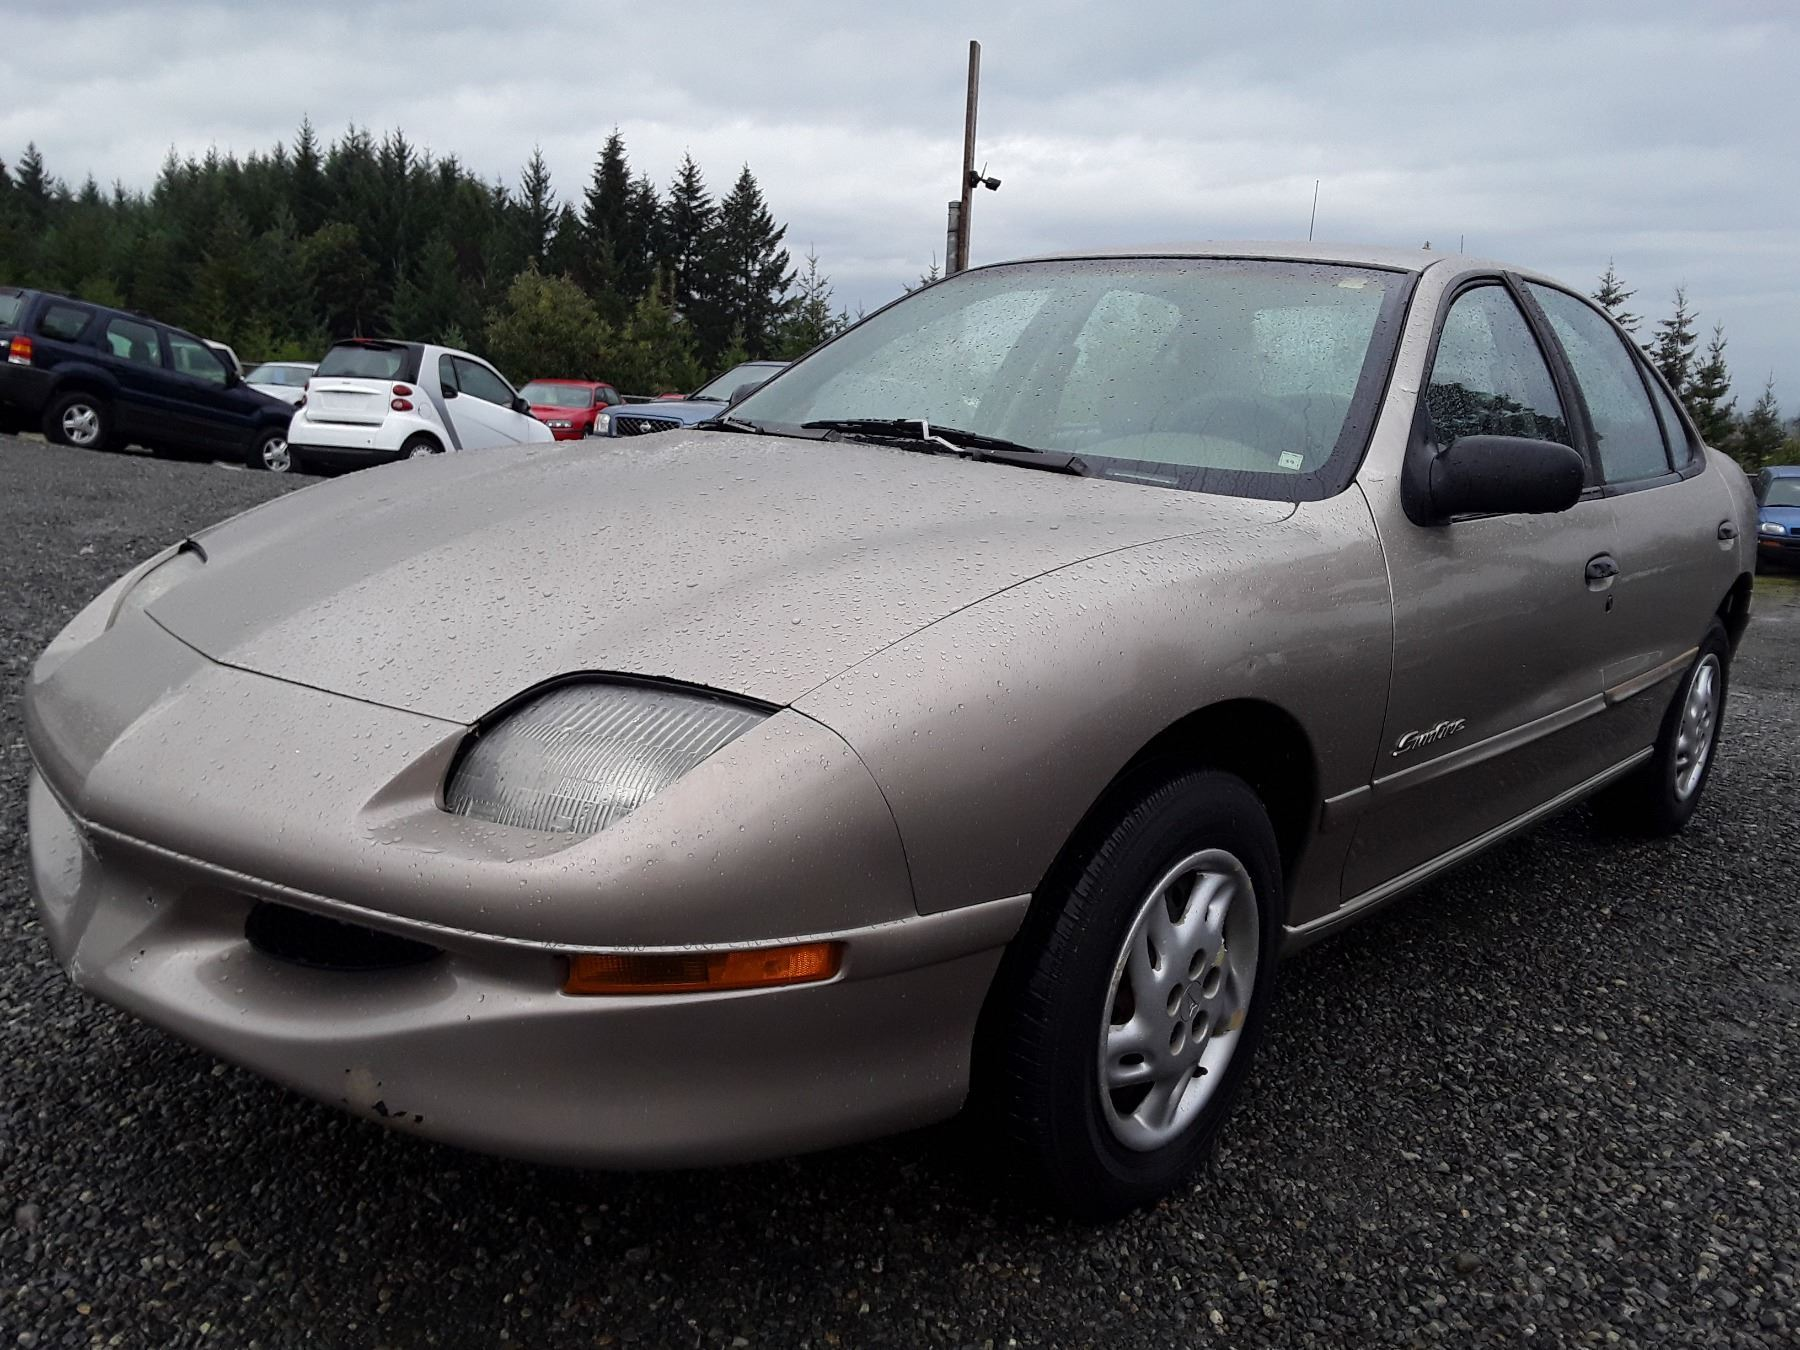 small resolution of image 1 m5 1996 pontiac sunfire se brown 151953 km s